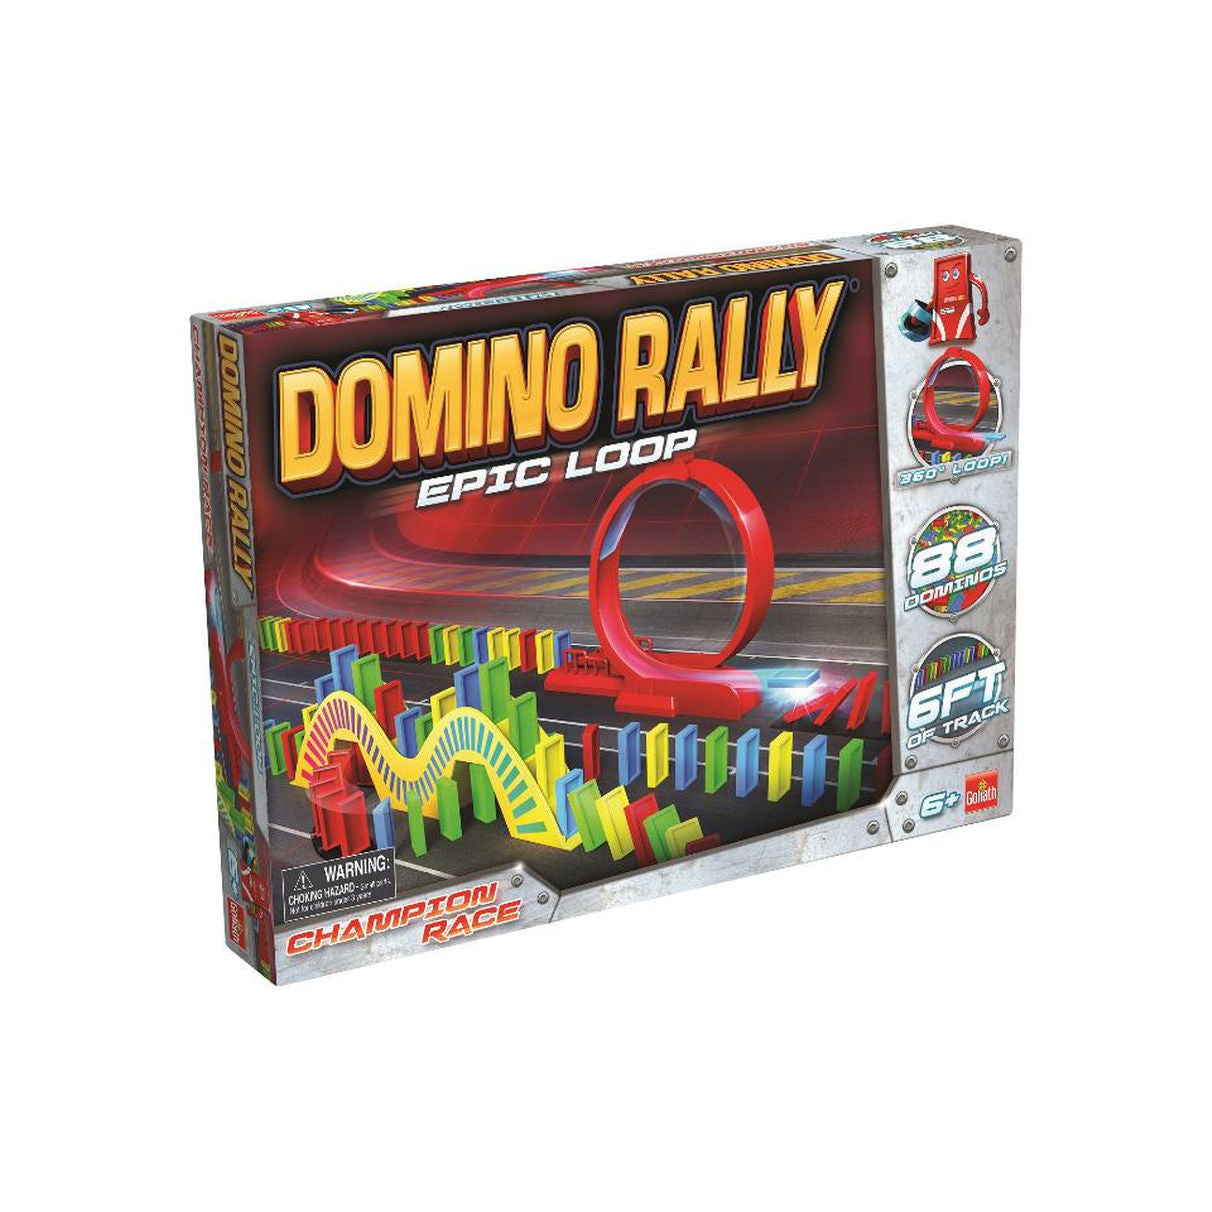 Domino Rally Epic Loop